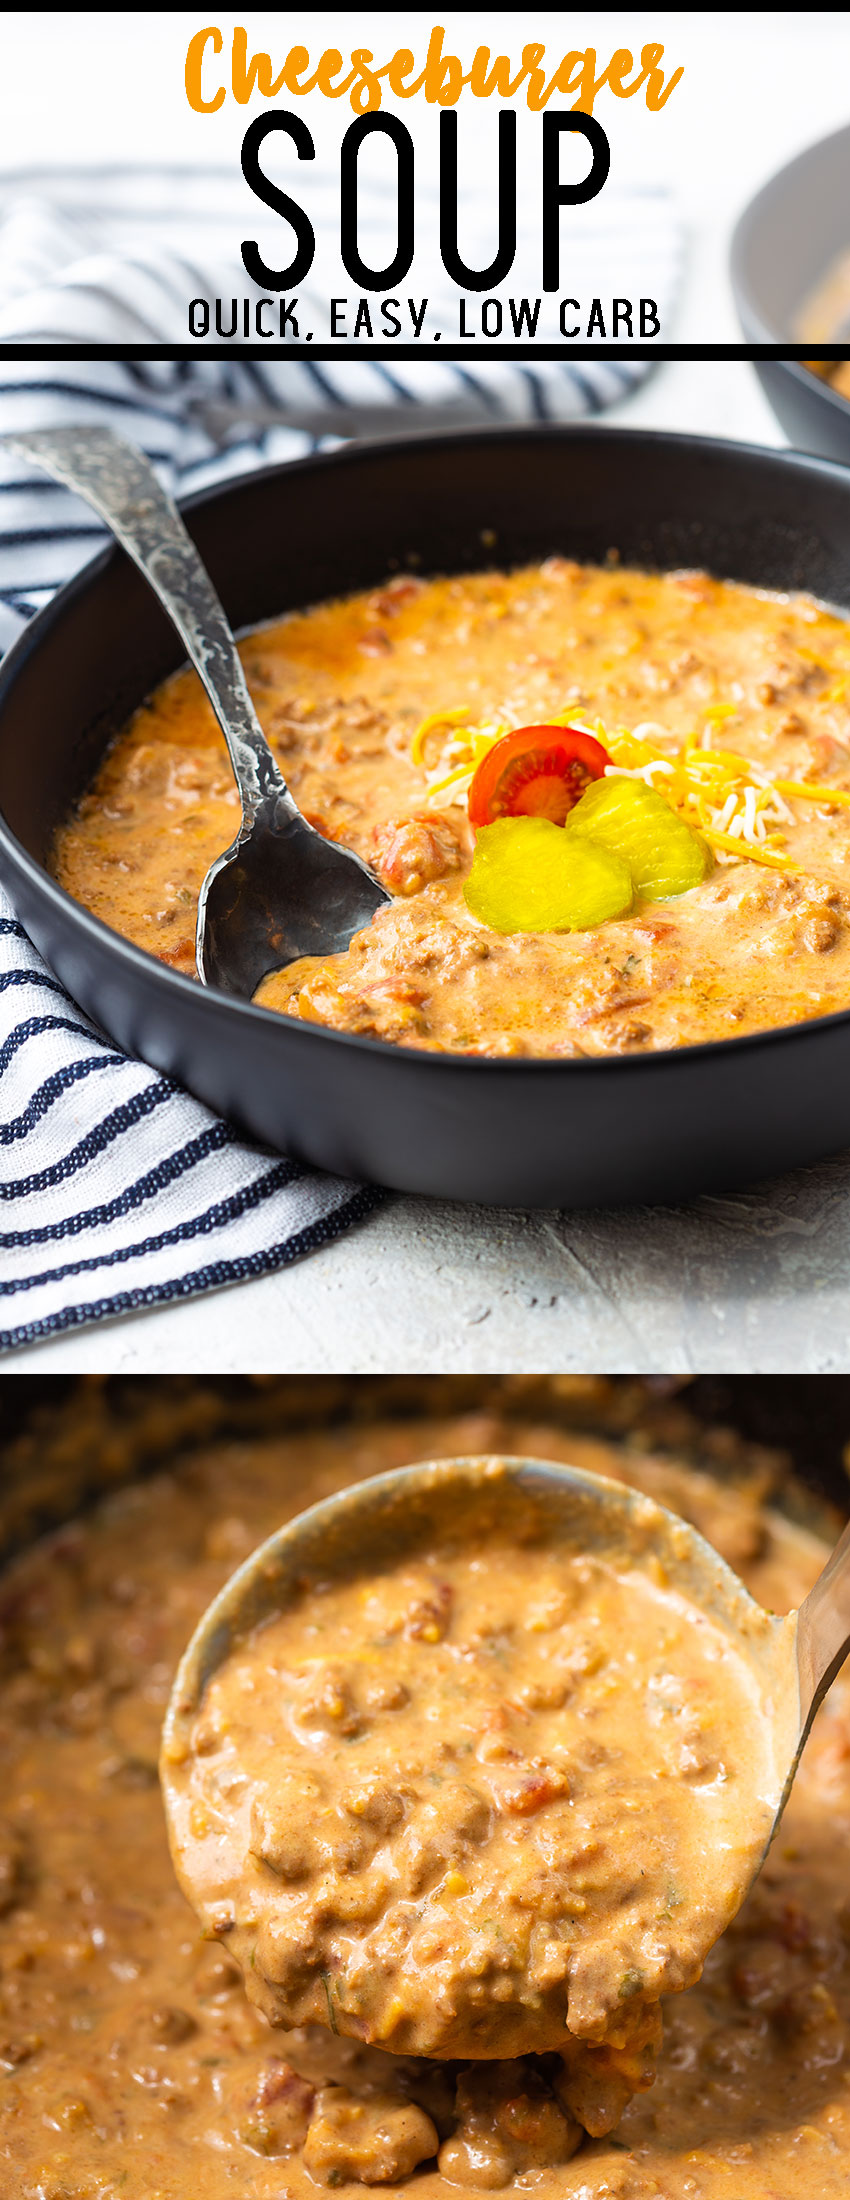 A rich, cheesy, beef soup that uses ground beef and all your favorite cheeseburger ingredients. Low carb and keto diet friendly.